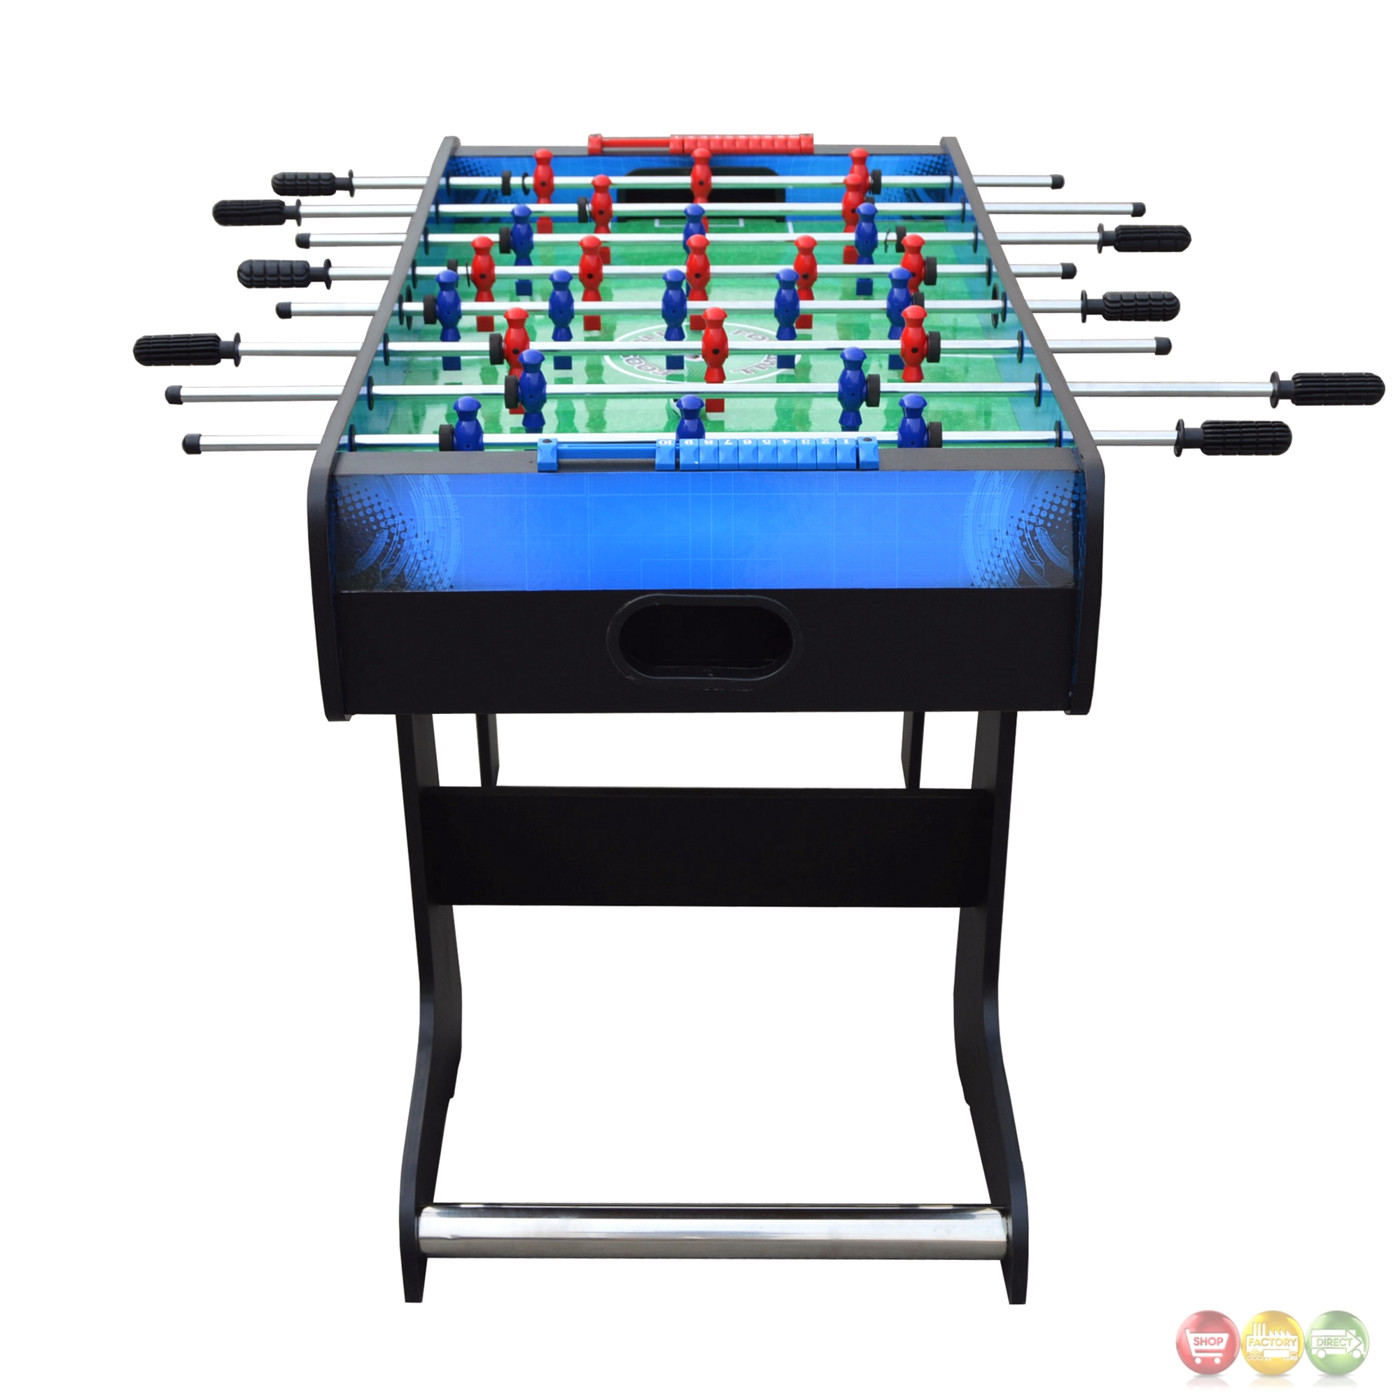 Red vs blue gladiator 48 foosball game table with fold away design - Fold away table ...